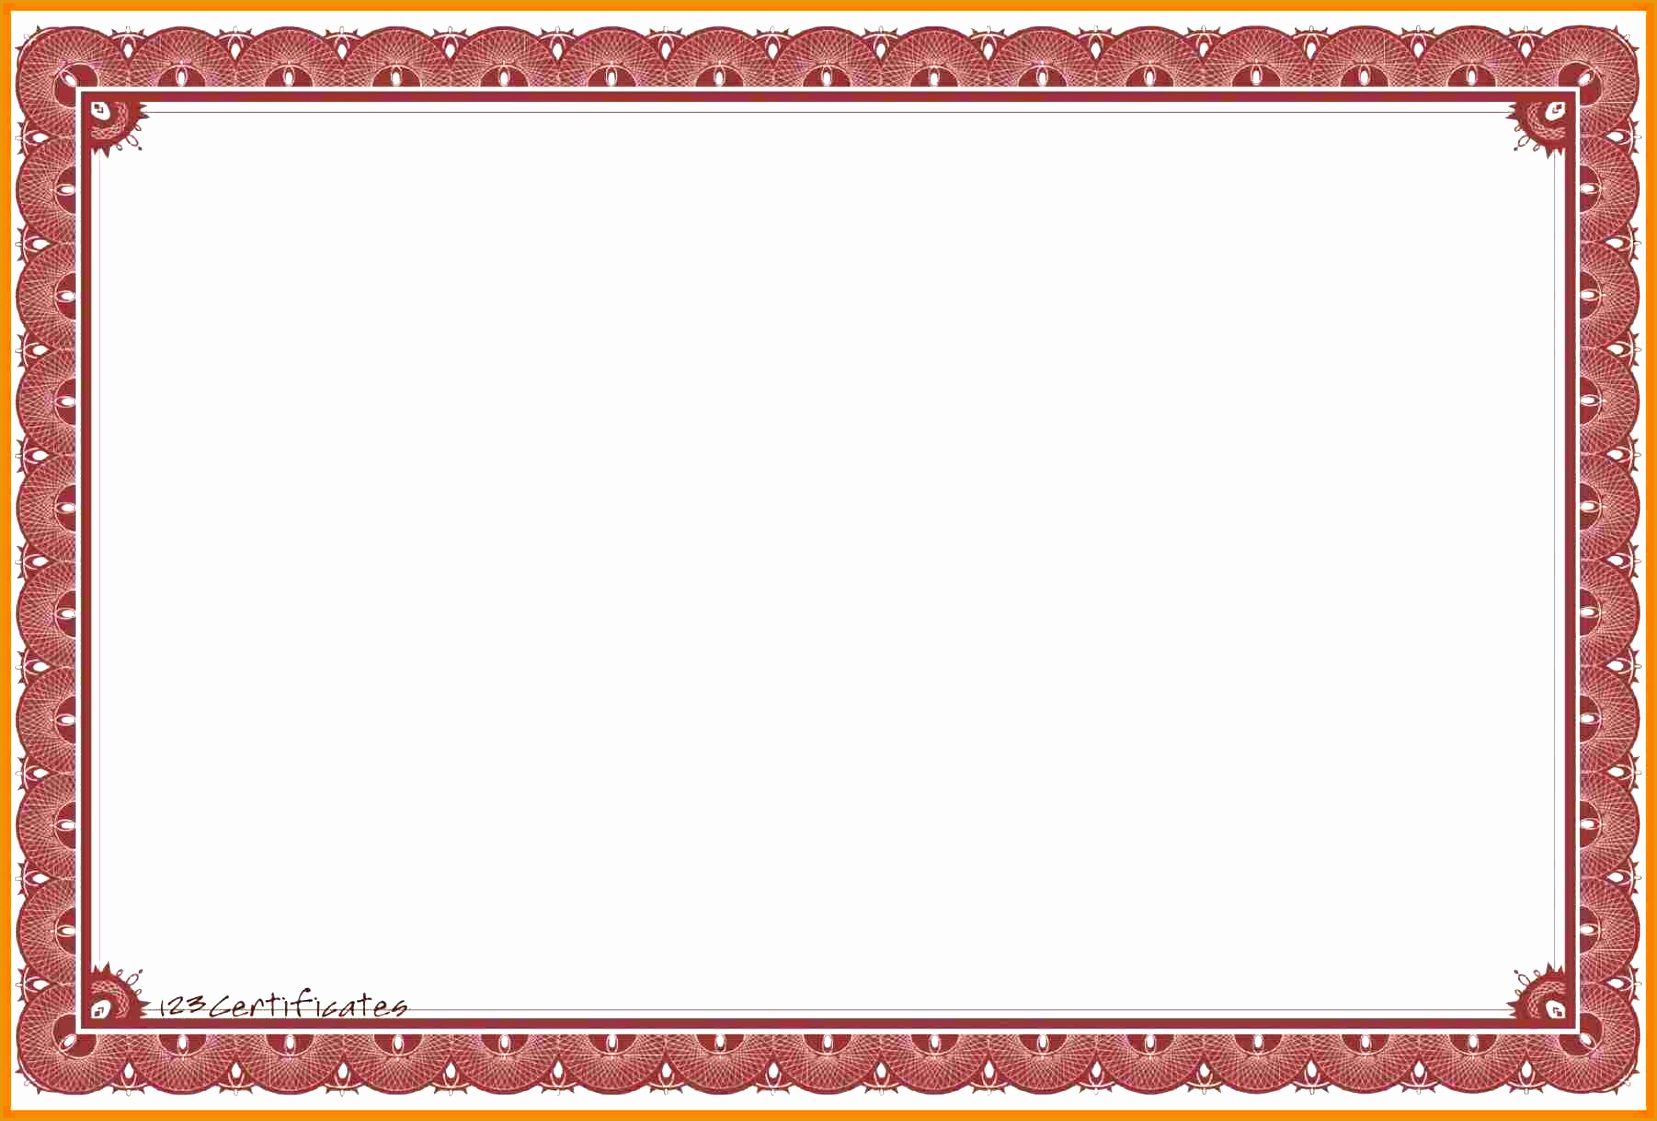 4 certificate frame png11211657